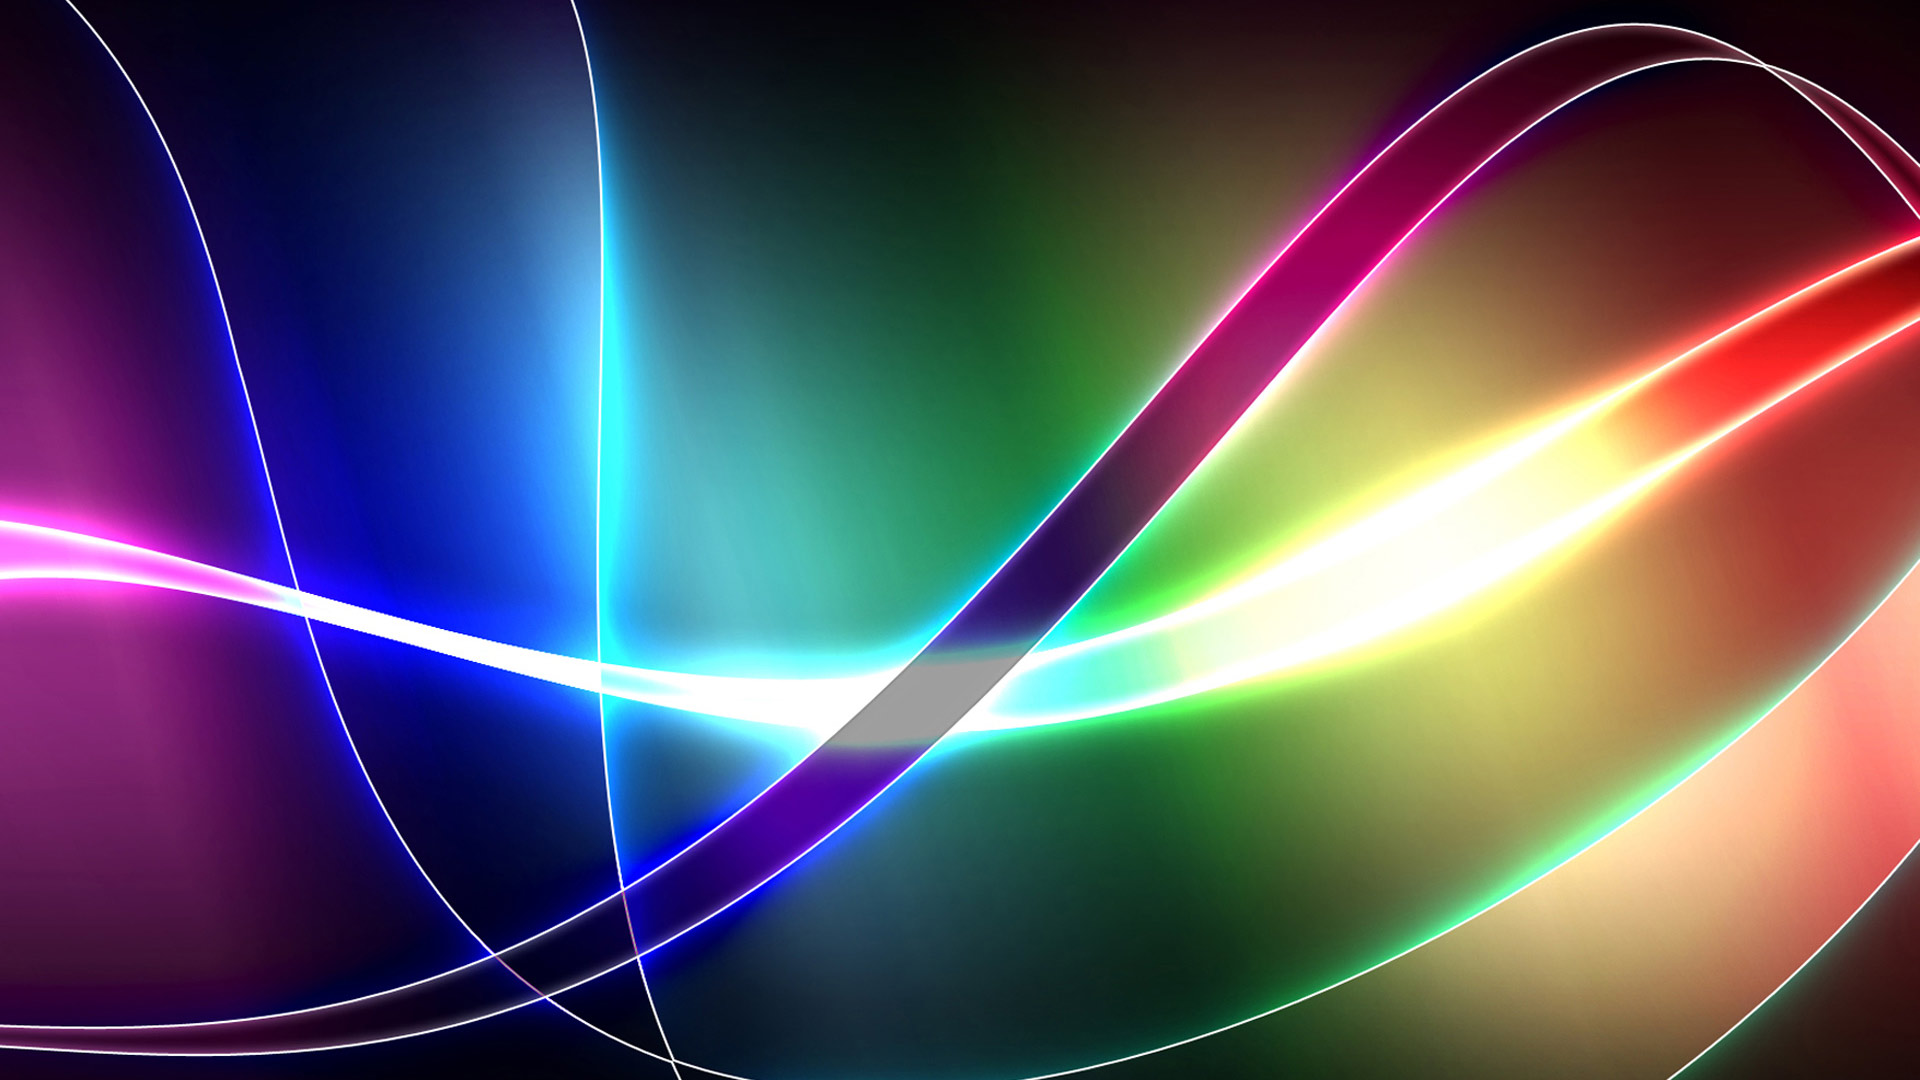 Colorful Abstract Backgrounds 3217 Hd Wallpapers in Abstract 1920x1080